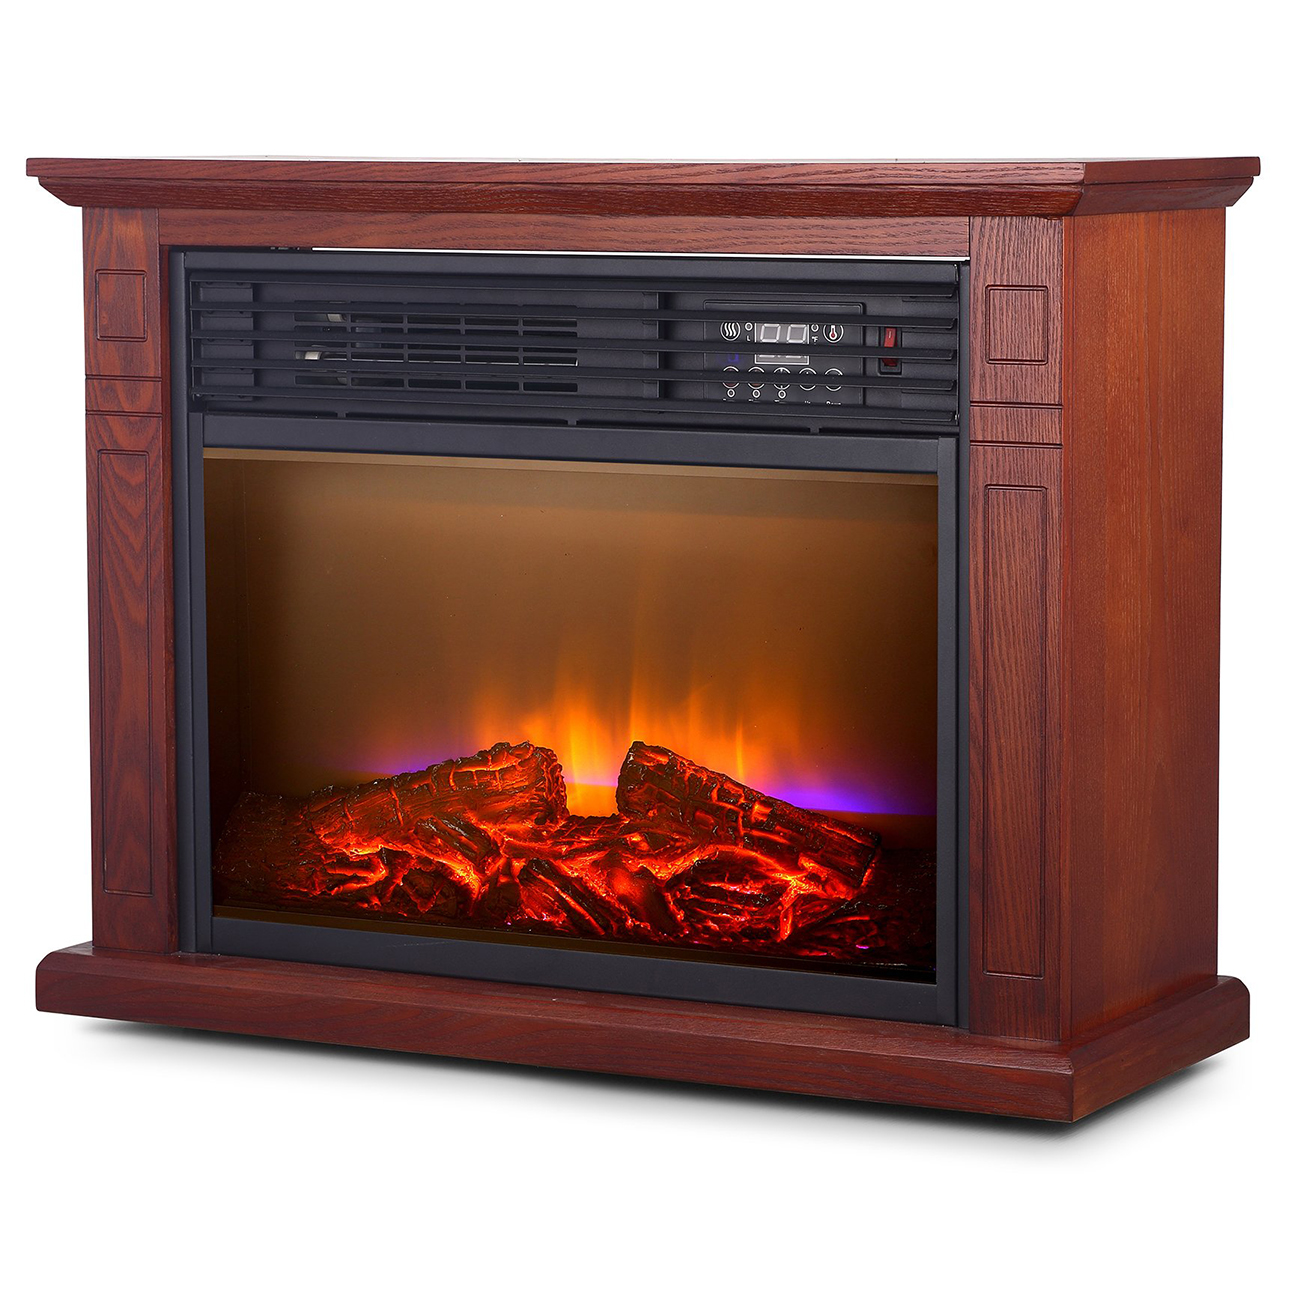 Electric Fireplace With Heat: Large Room Electric Quartz Infrared Fireplace Heater